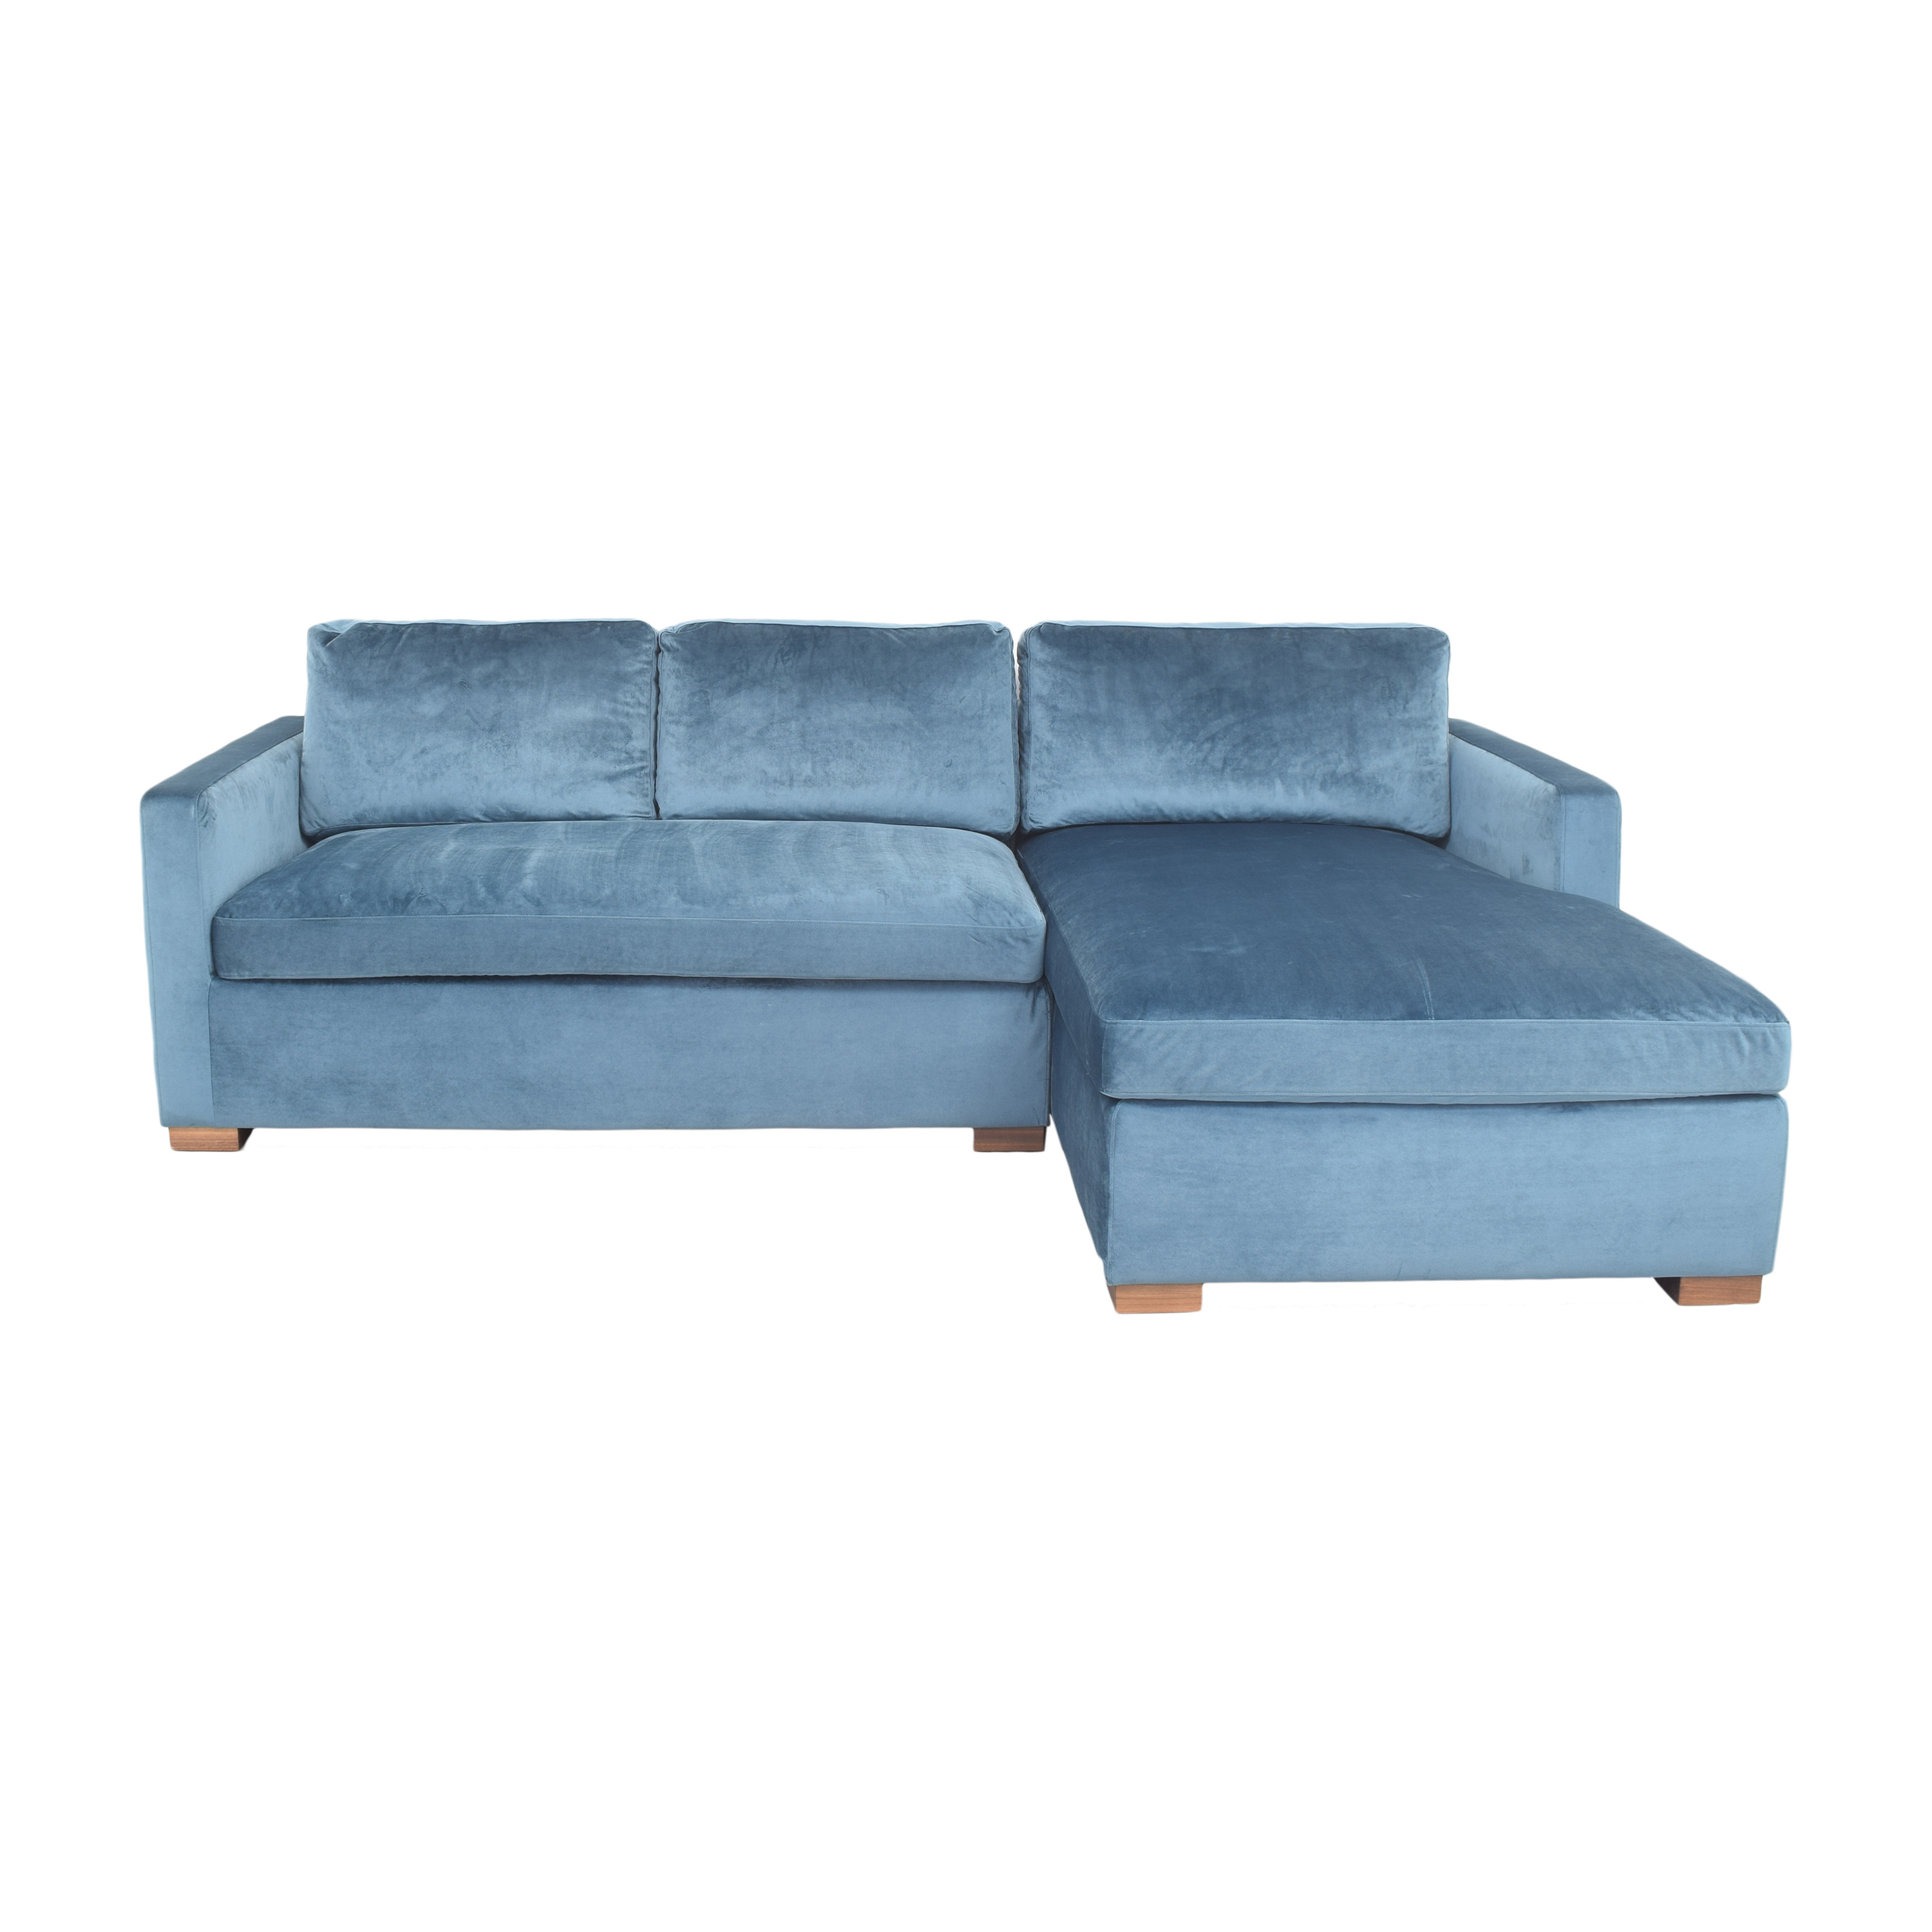 Interior Define Interior Define Charly Sectional Sofa with Chaise coupon